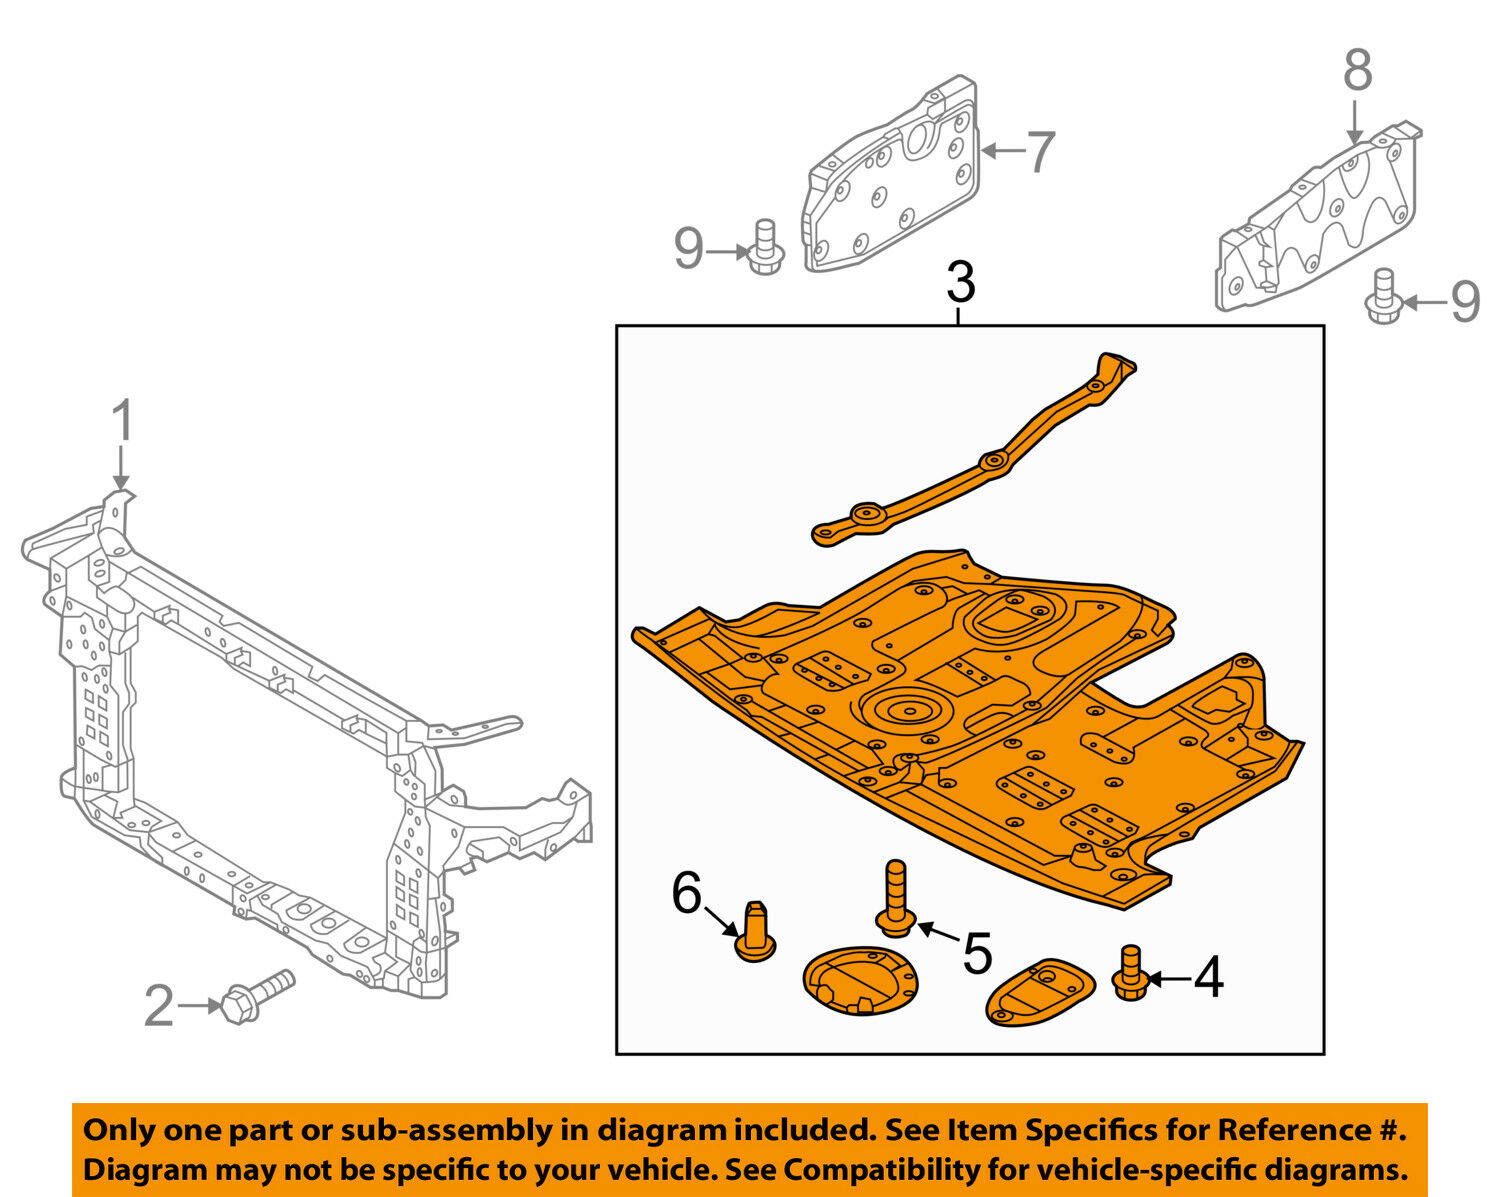 Hyundai Oem Santa Fe Splash Shield Under Engine Radiator Cover 2008 Diagram 291102w800 1 Of 2free Shipping